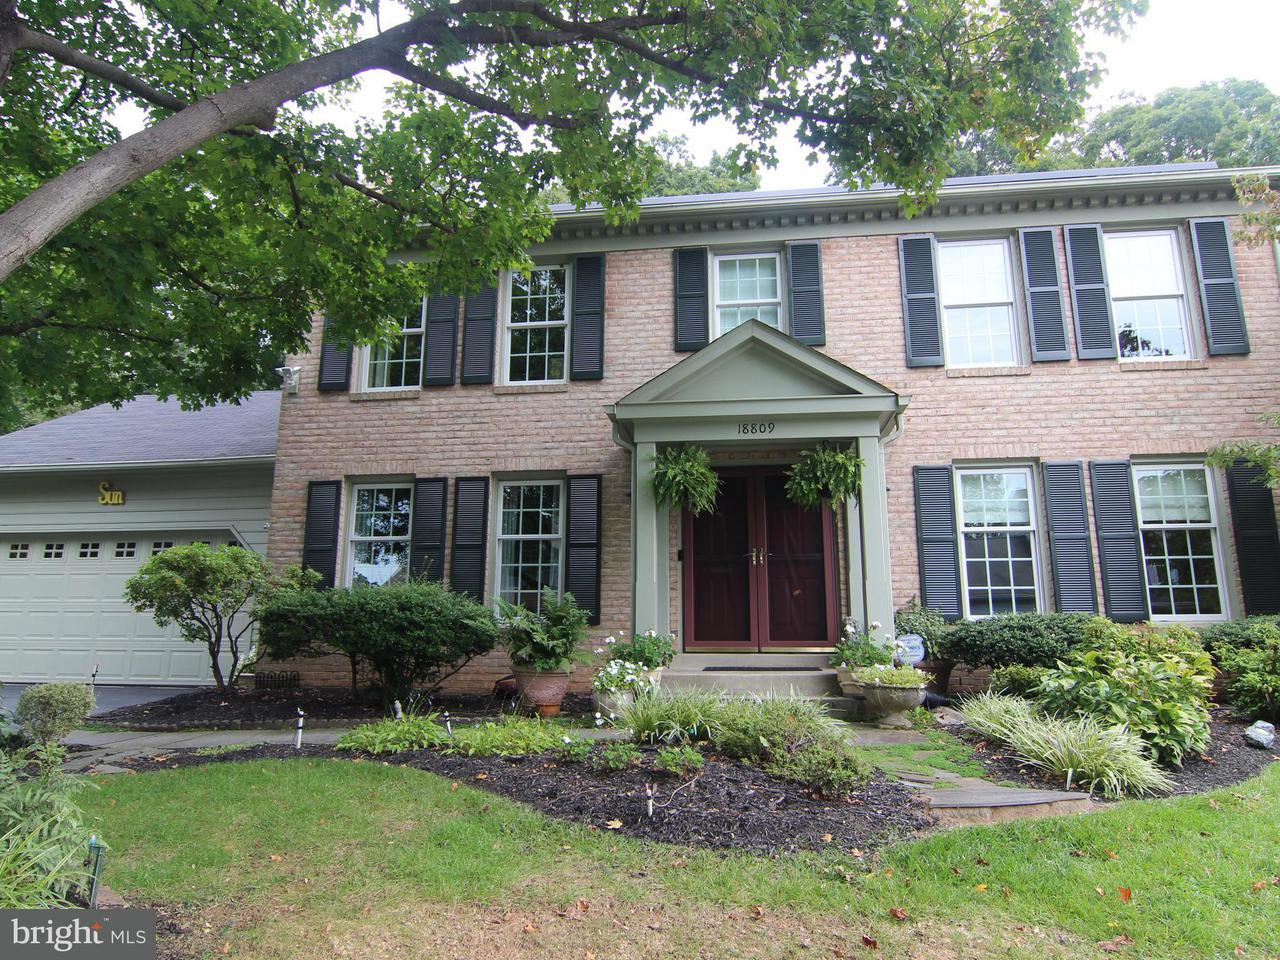 Single Family Home for Sale at 18809 MEADOW FENCE RD S 18809 MEADOW FENCE RD S Montgomery Village, Maryland 20886 United States